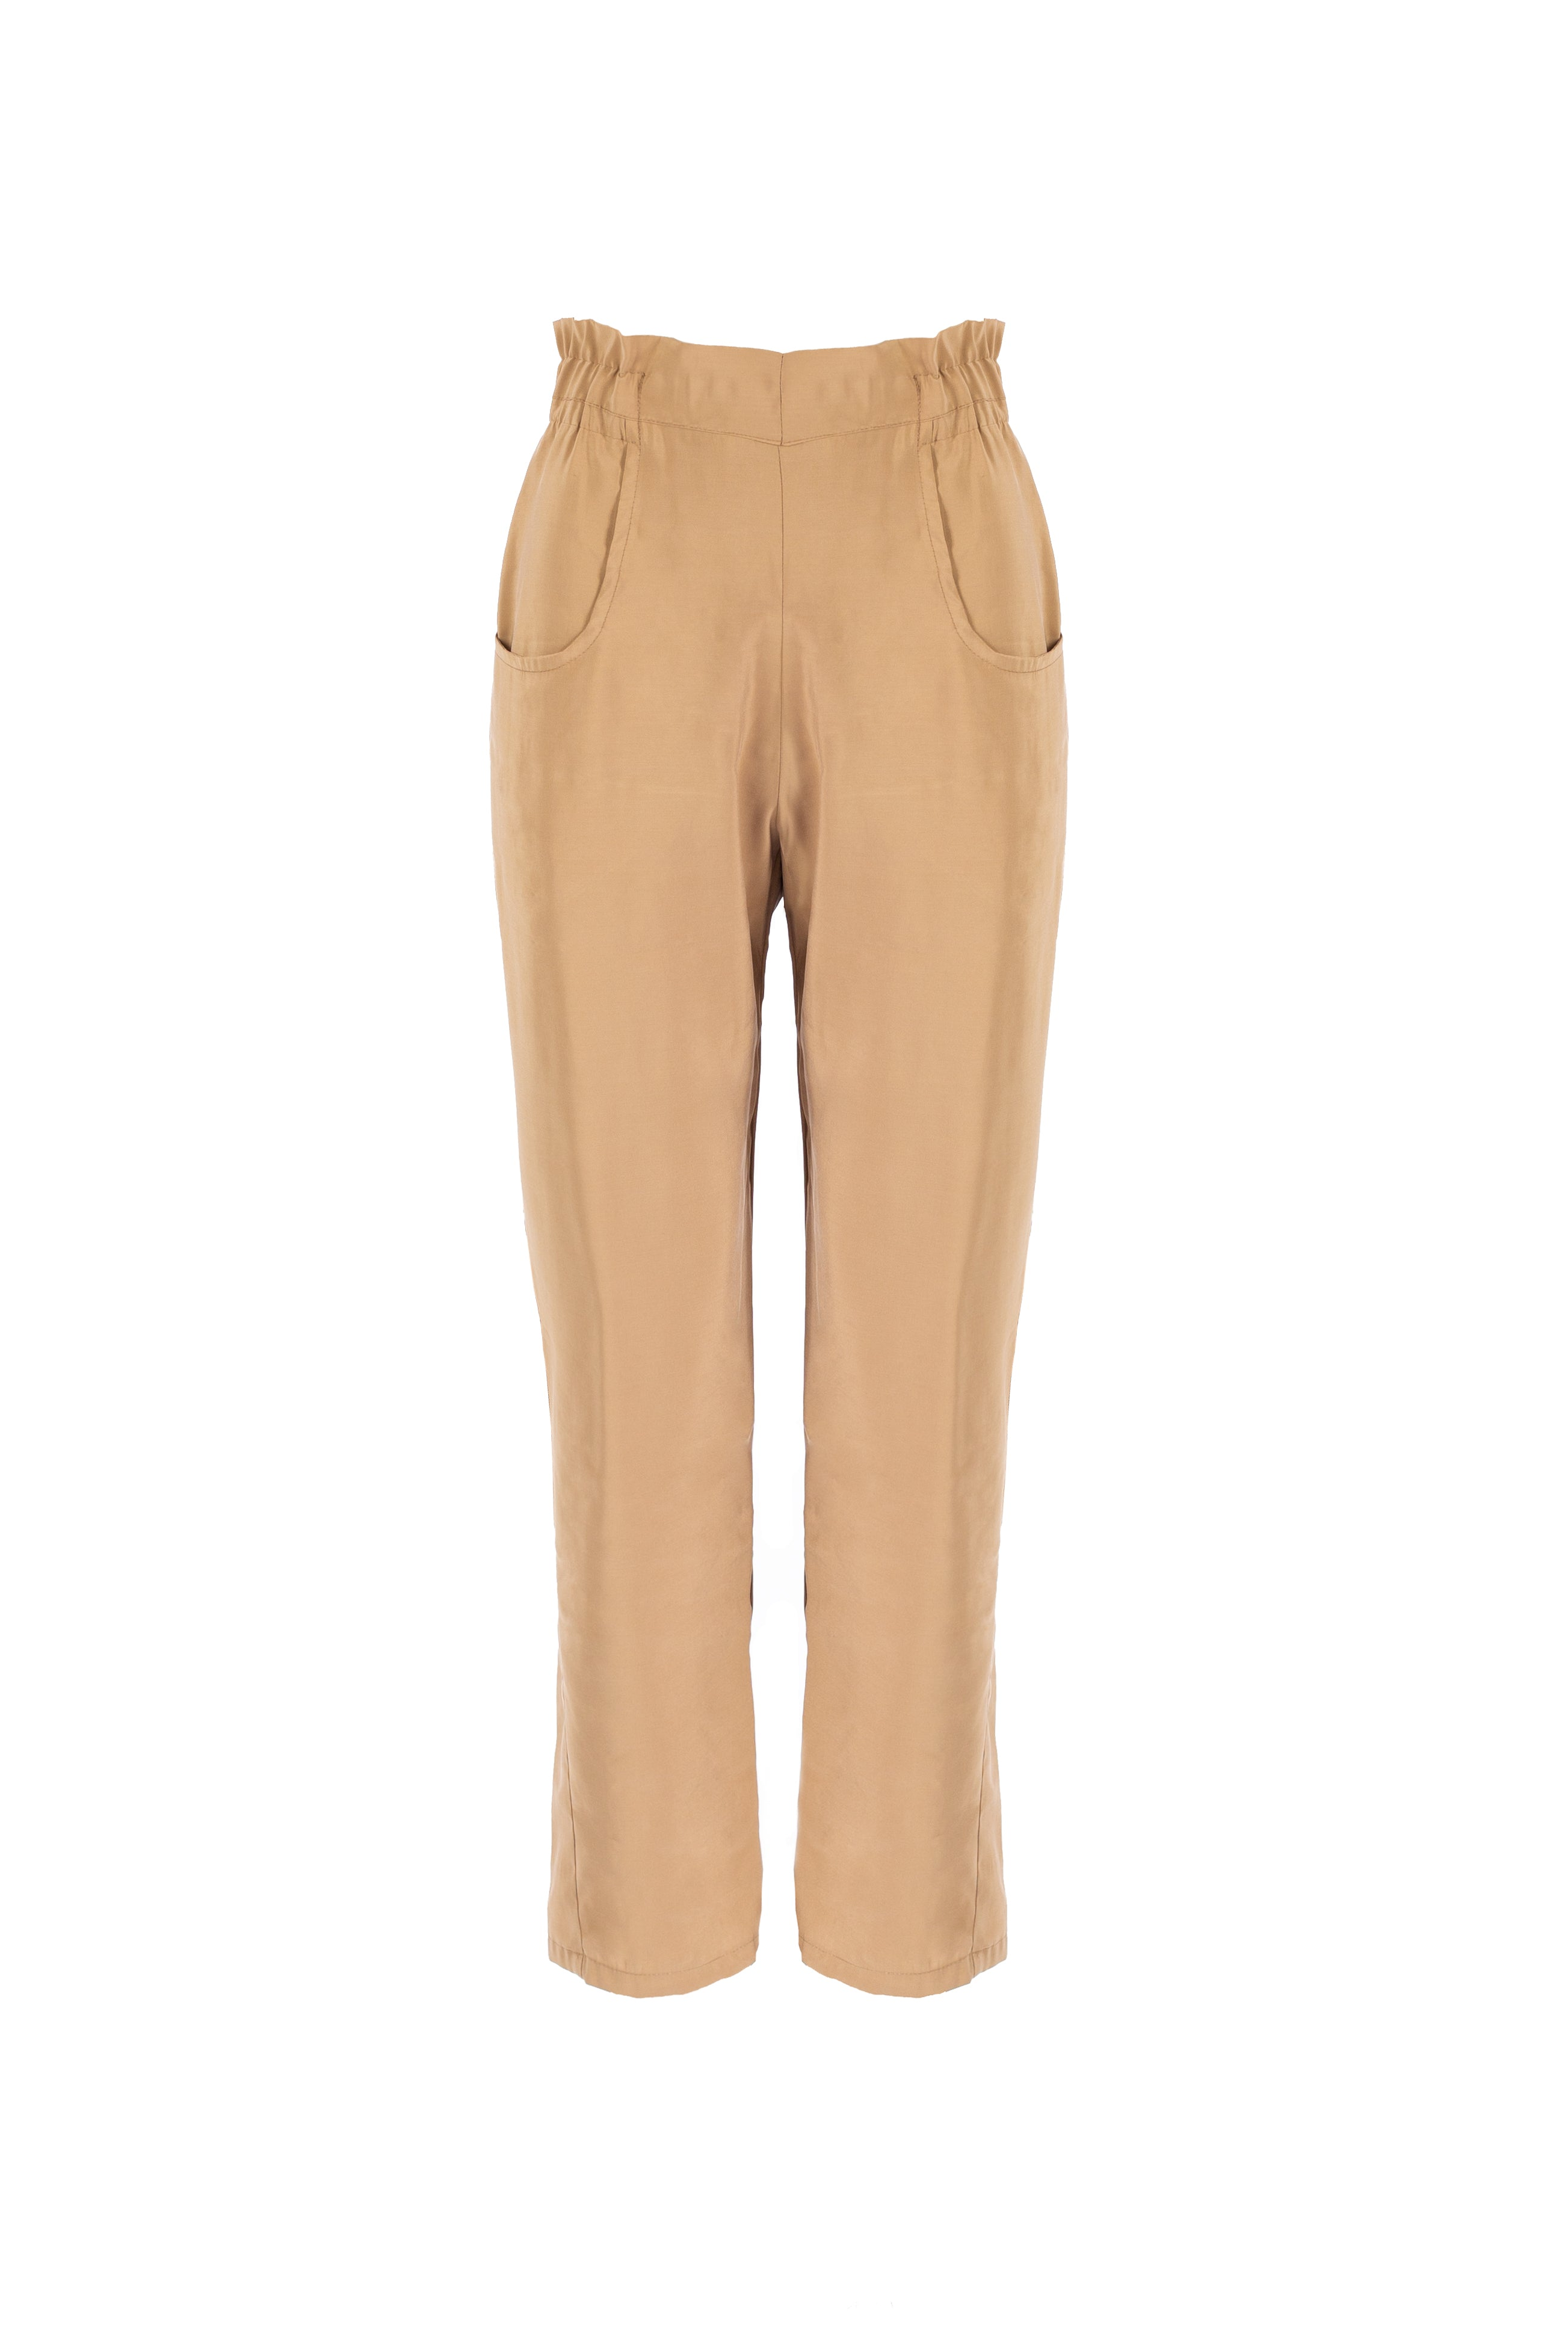 9758 - GAO - CREMA PANTS IN CUPRO -BYOU by Patricia Gouveia